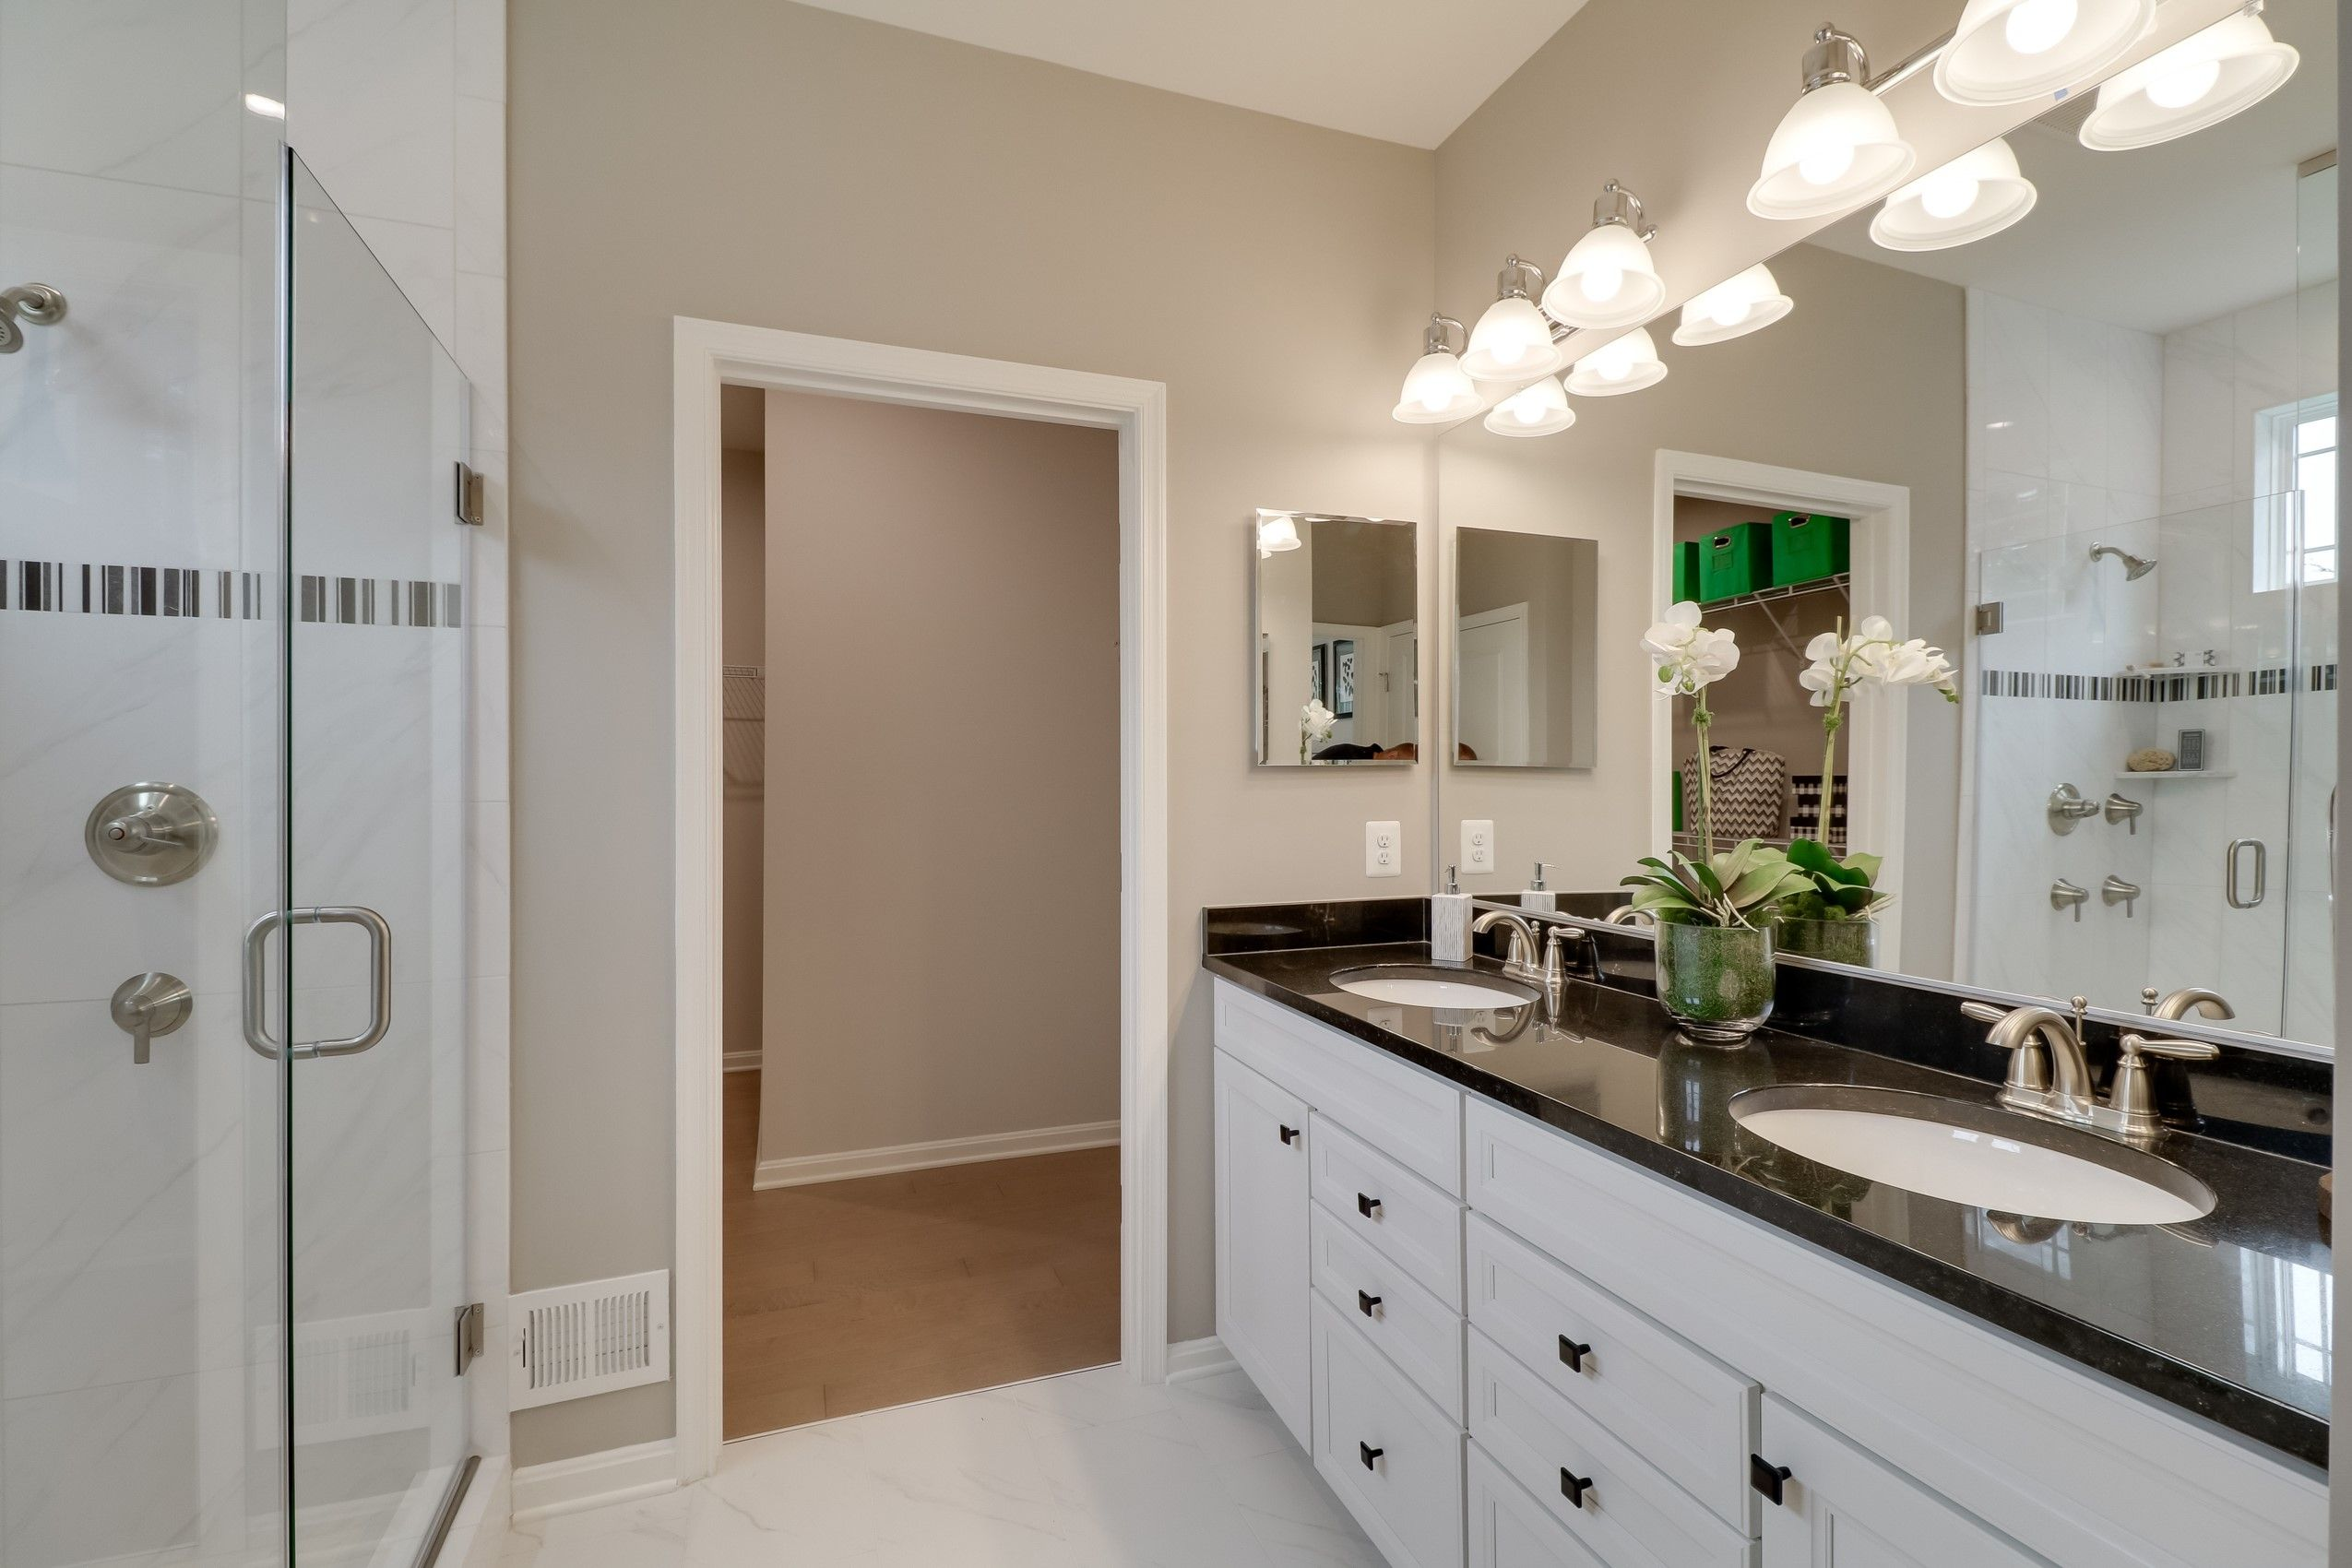 Bathroom featured in the Eastwood By K. Hovnanian's® Four Seasons in Sussex, DE